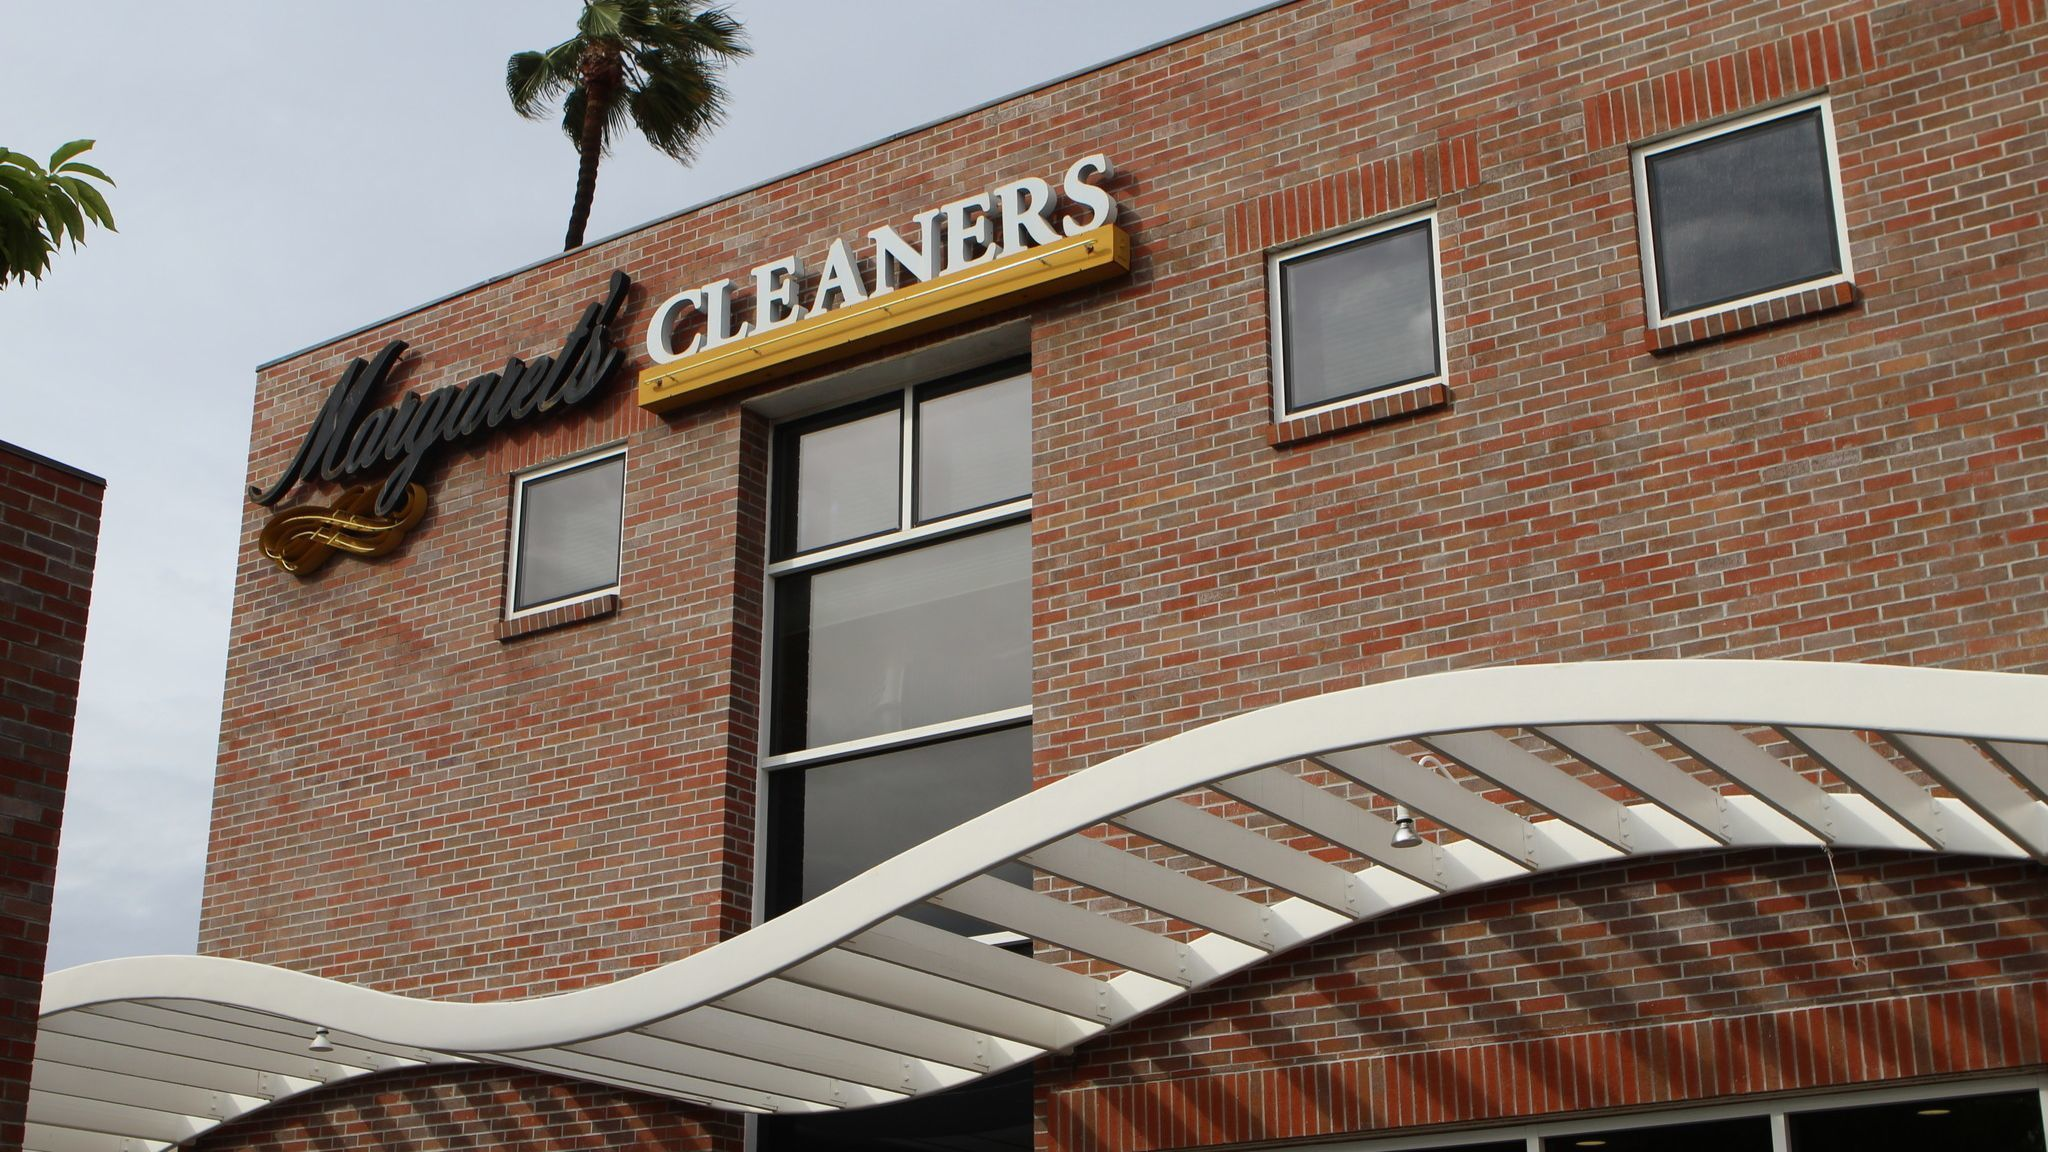 Margaret's Dry Cleaners